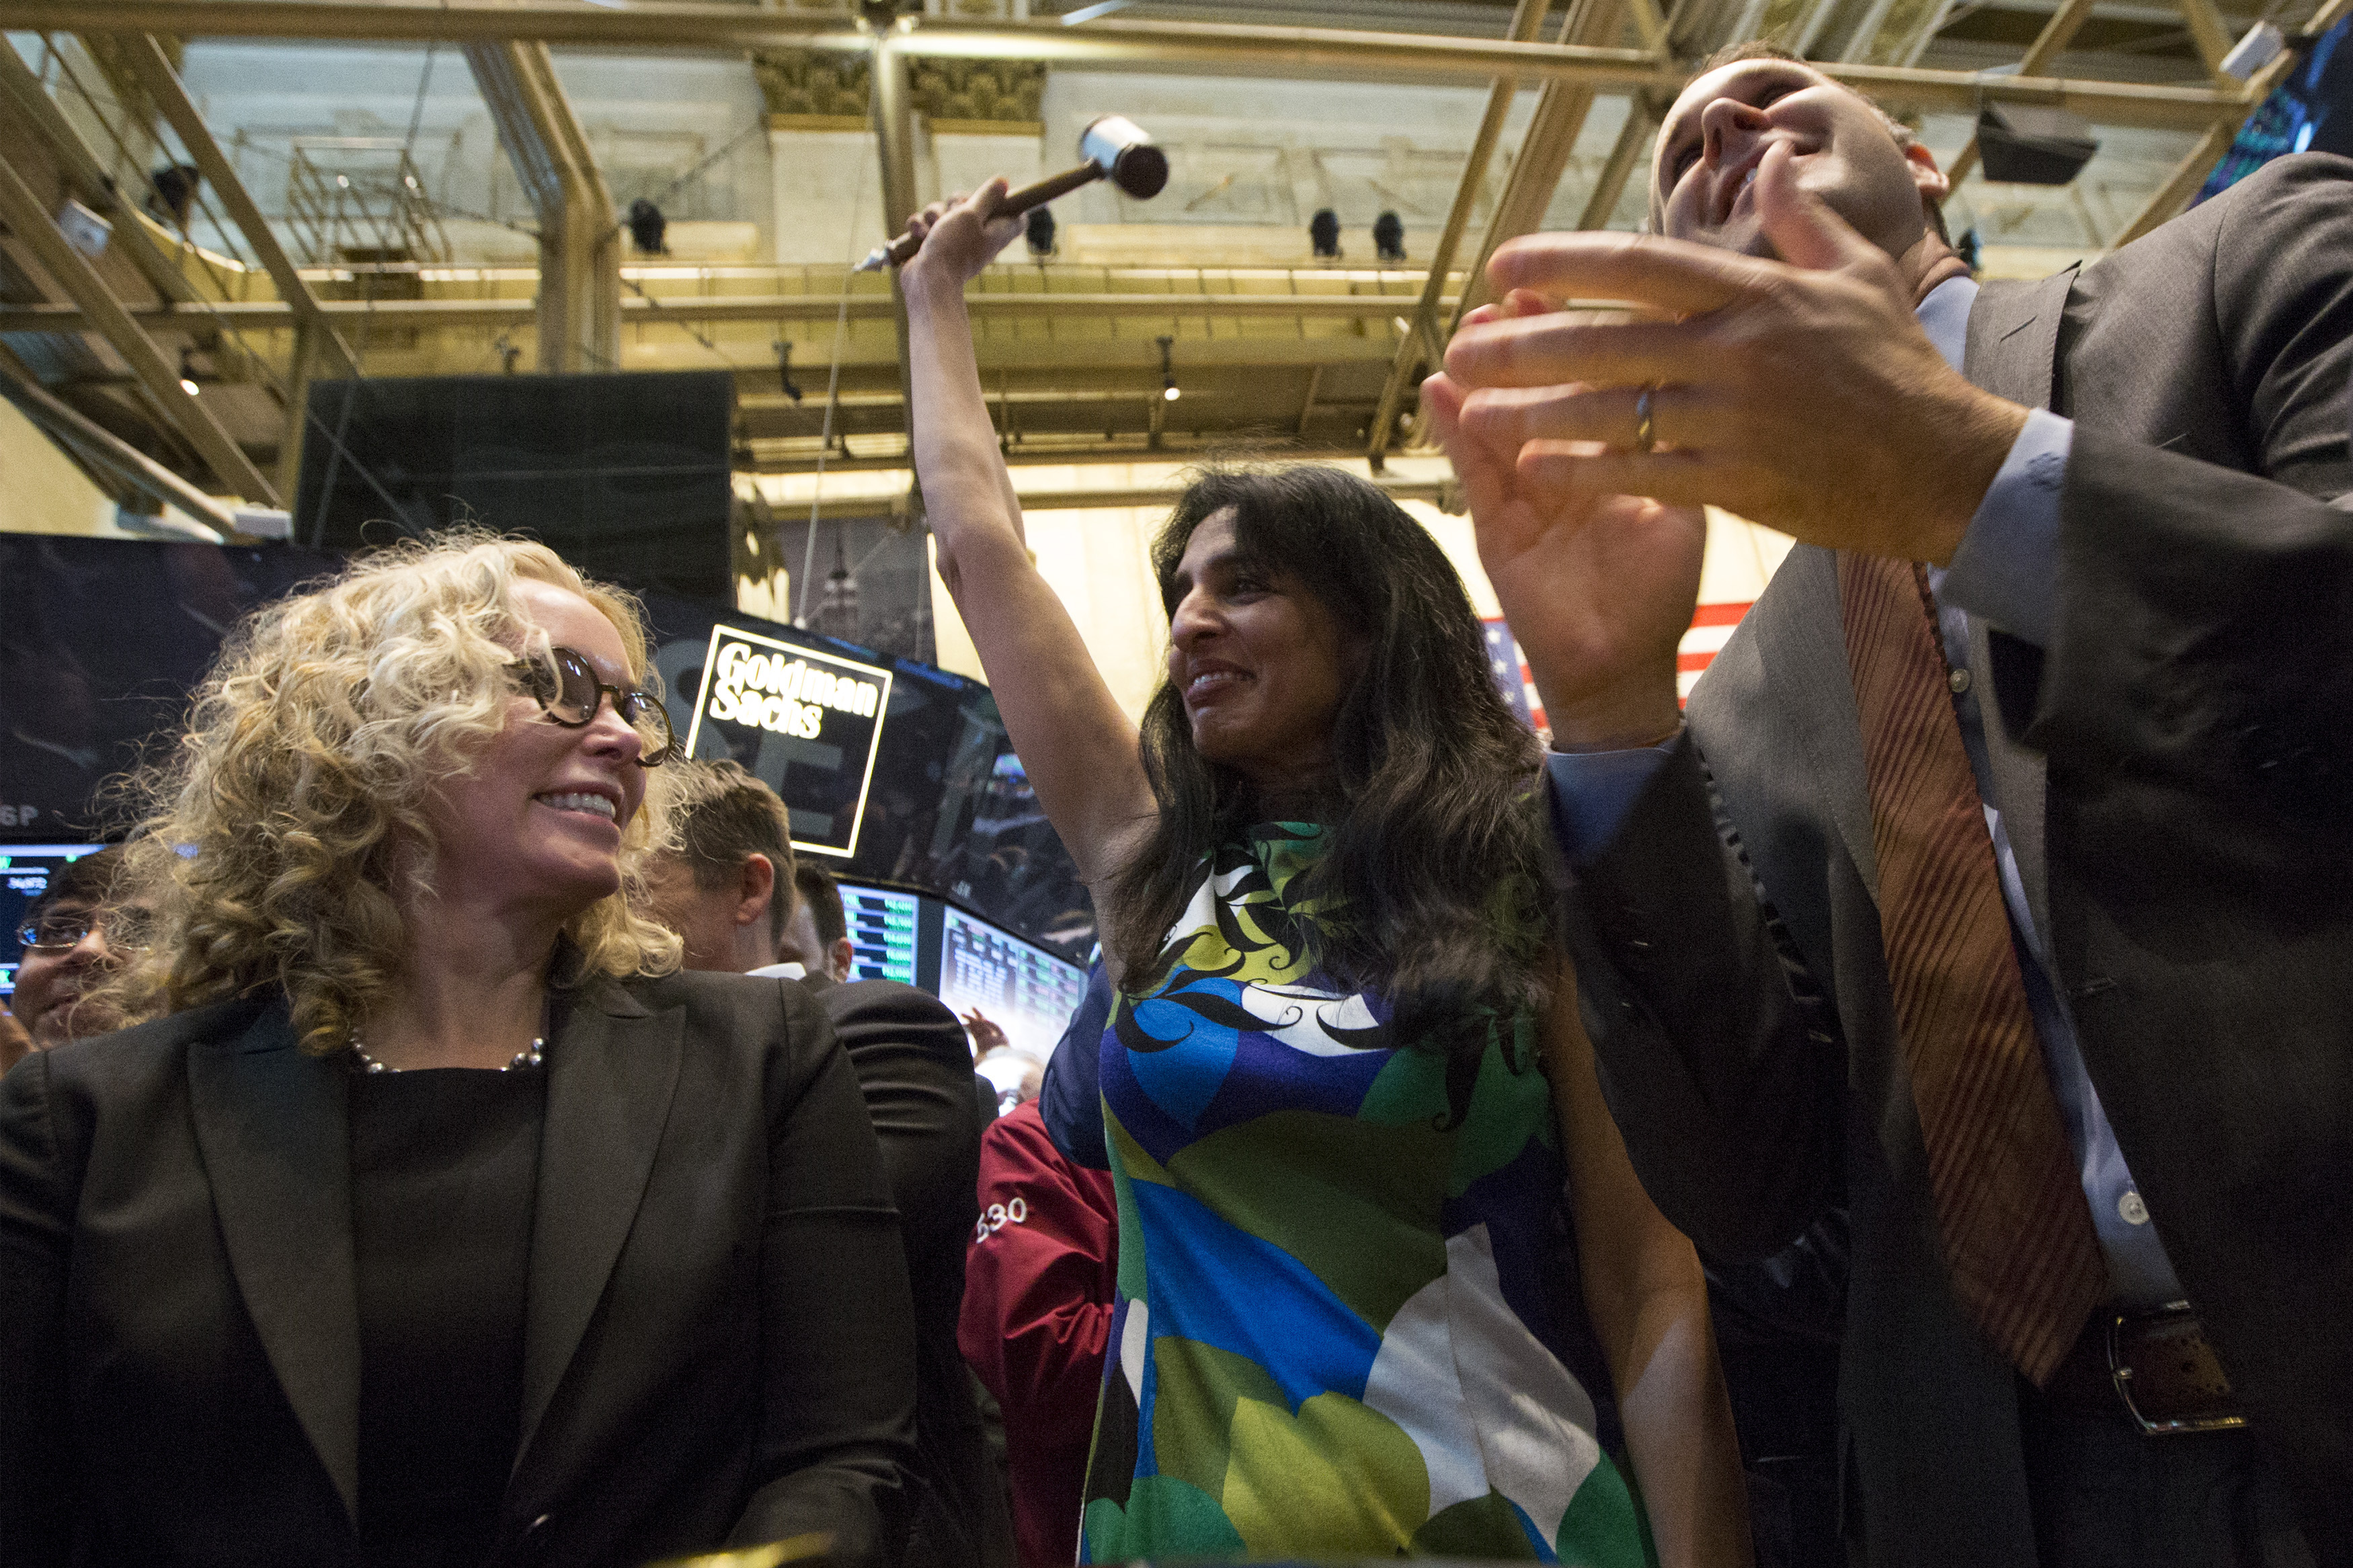 Ullal, president and CEO of Arista Networks, raises a gavel after her company's stock began trading during its IPO on the floor of the New York Stock Exchange